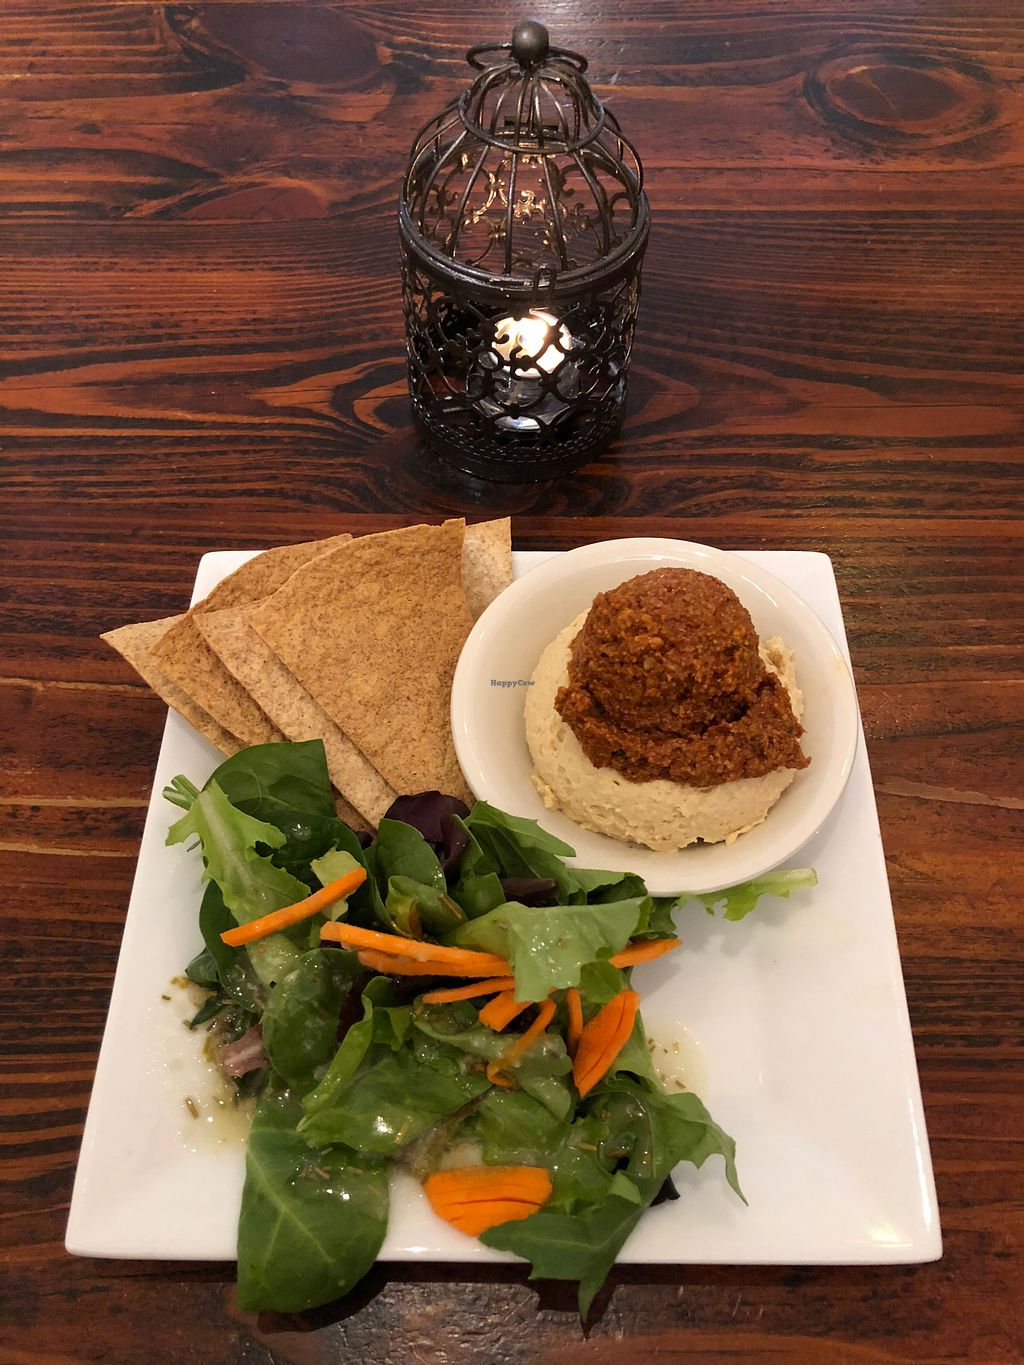 "Photo of Pasha Mezze  by <a href=""/members/profile/JamesMadsen"">JamesMadsen</a> <br/>Hummus with spicy walnut dip <br/> April 26, 2018  - <a href='/contact/abuse/image/23578/391078'>Report</a>"